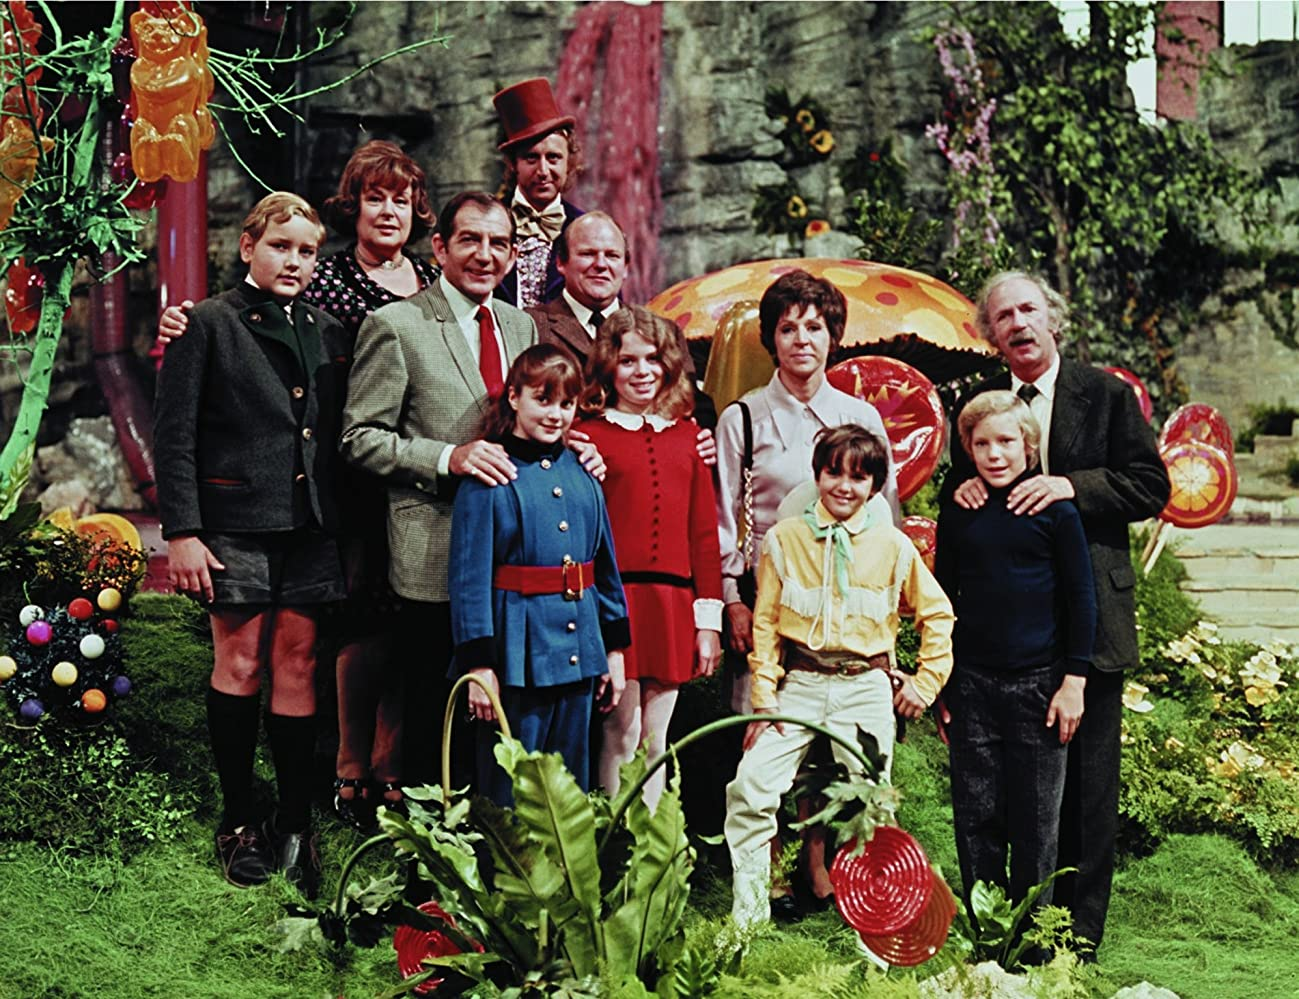 Gene Wilder Paris Themmen Jack Albertson Michael Bollner Julie Dawn Cole Nora Denney Roy Kinnear Denise Nickerson Peter Ostrum Ursula Reit and Leonard Stone in Willy Wonka  the Chocolate Factory 1971